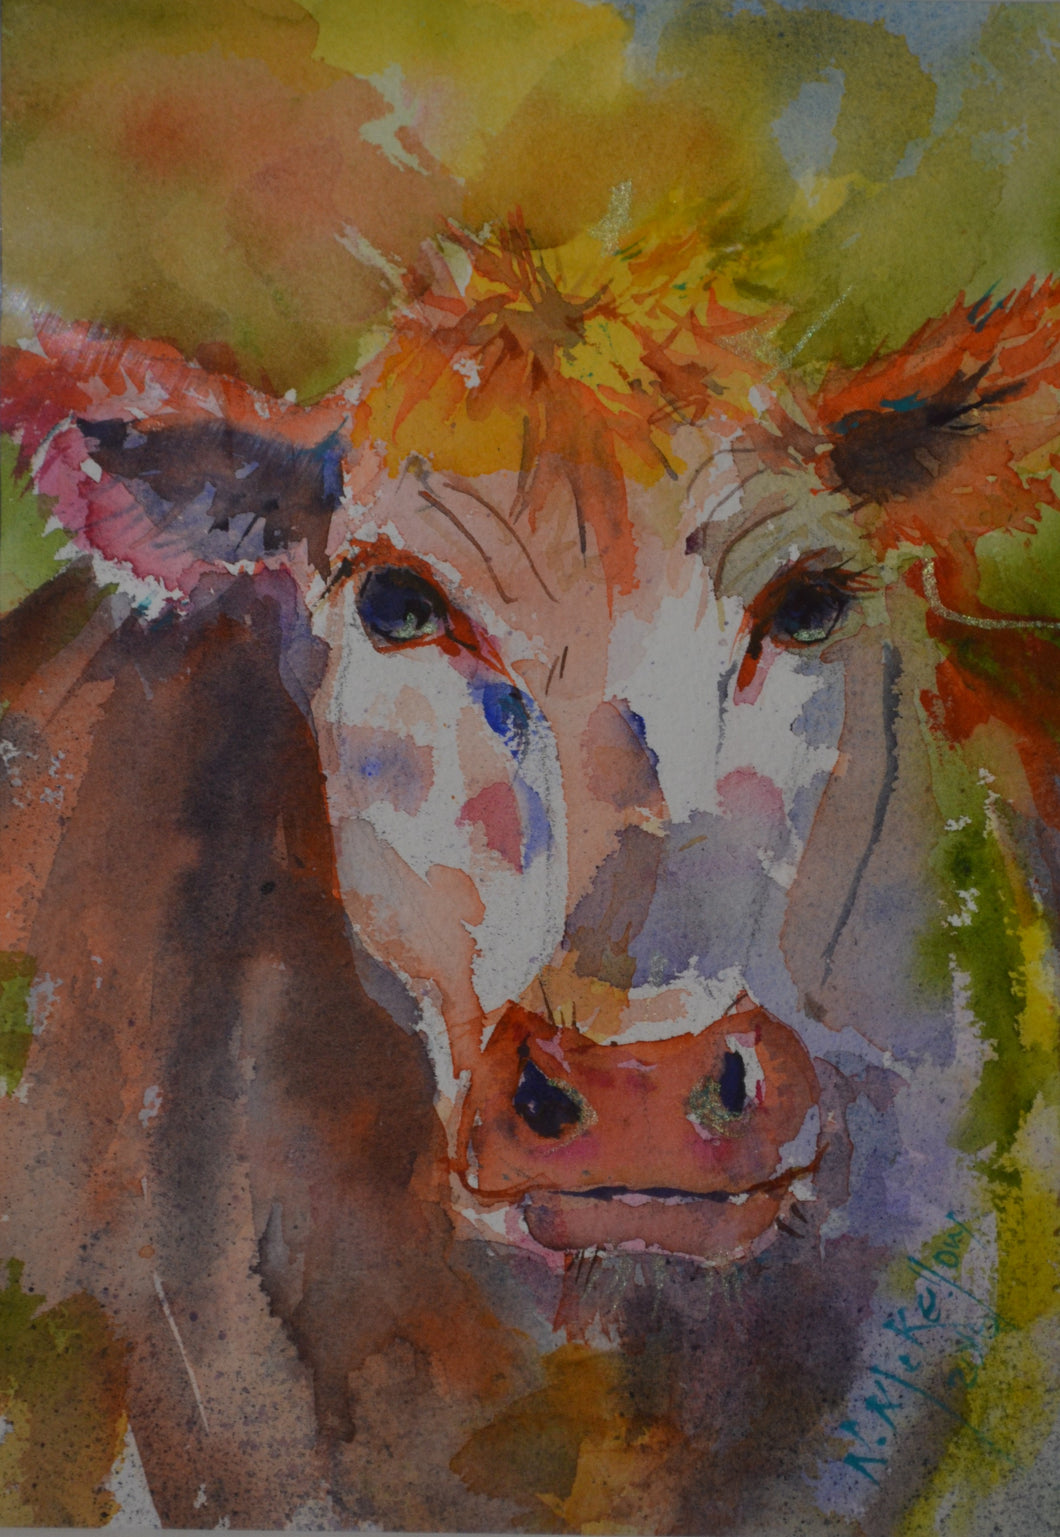 Cow 2020 by Nell McKellor